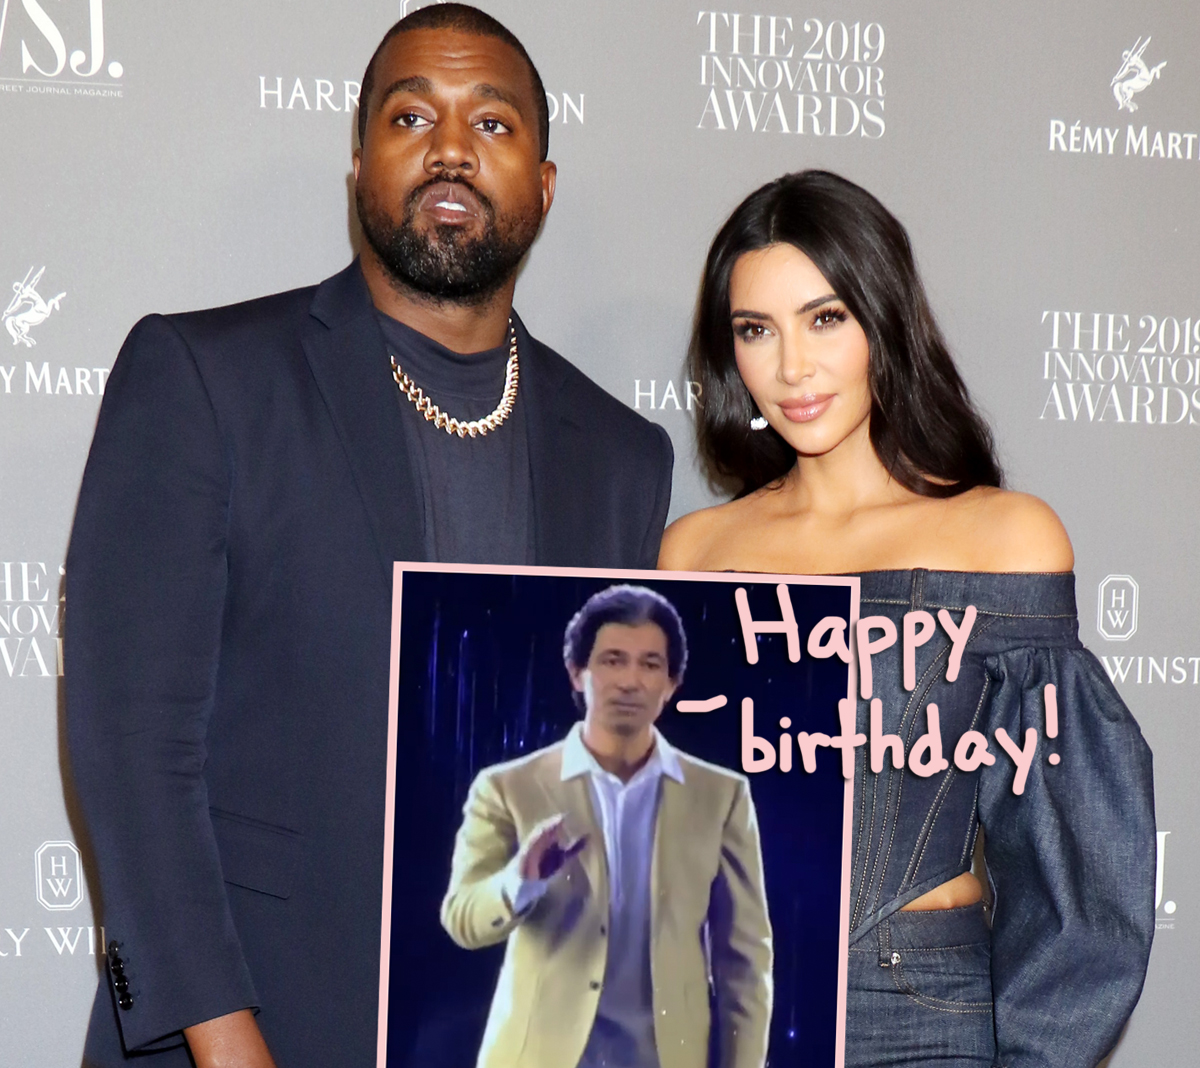 Kanye West Got Kim Kardashian A Hologram Of Her Late Father Robert Kardashian For Her Birthday! Magical Or Creepy?? - Perez Hilton